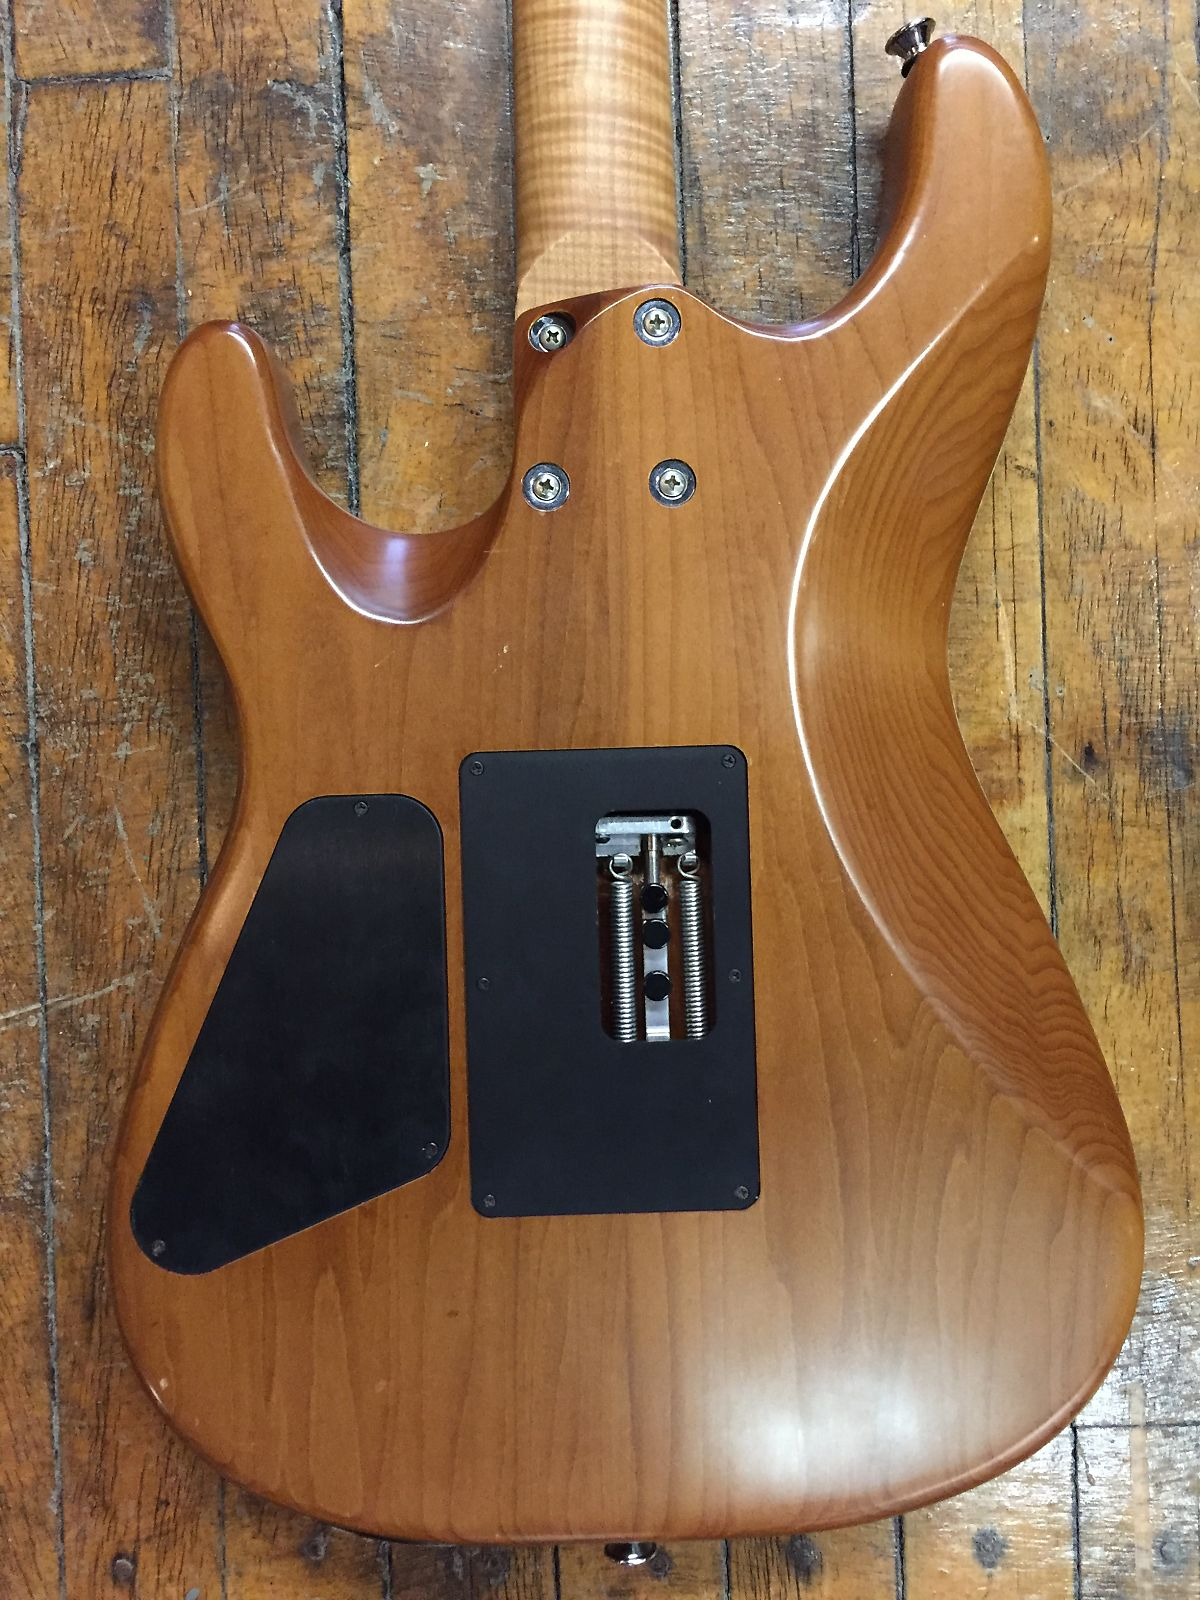 Charvel Guthrie Govan Signature 2015 Natural Flame Maple